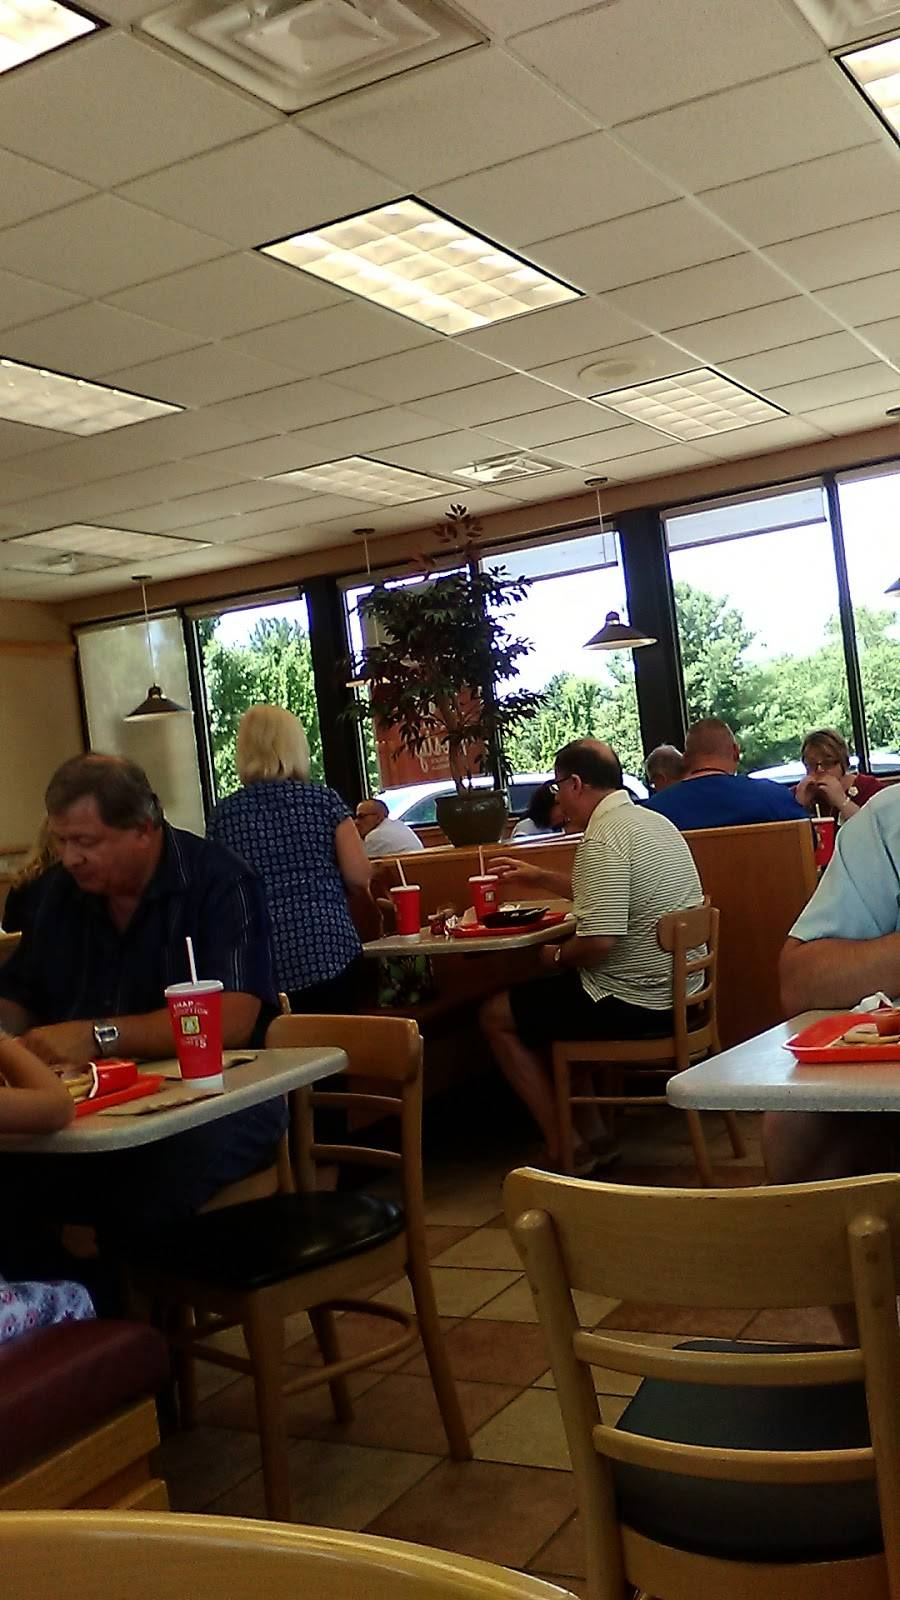 Wendy S Restaurant 120 Harper Park Dr Beckley Wv